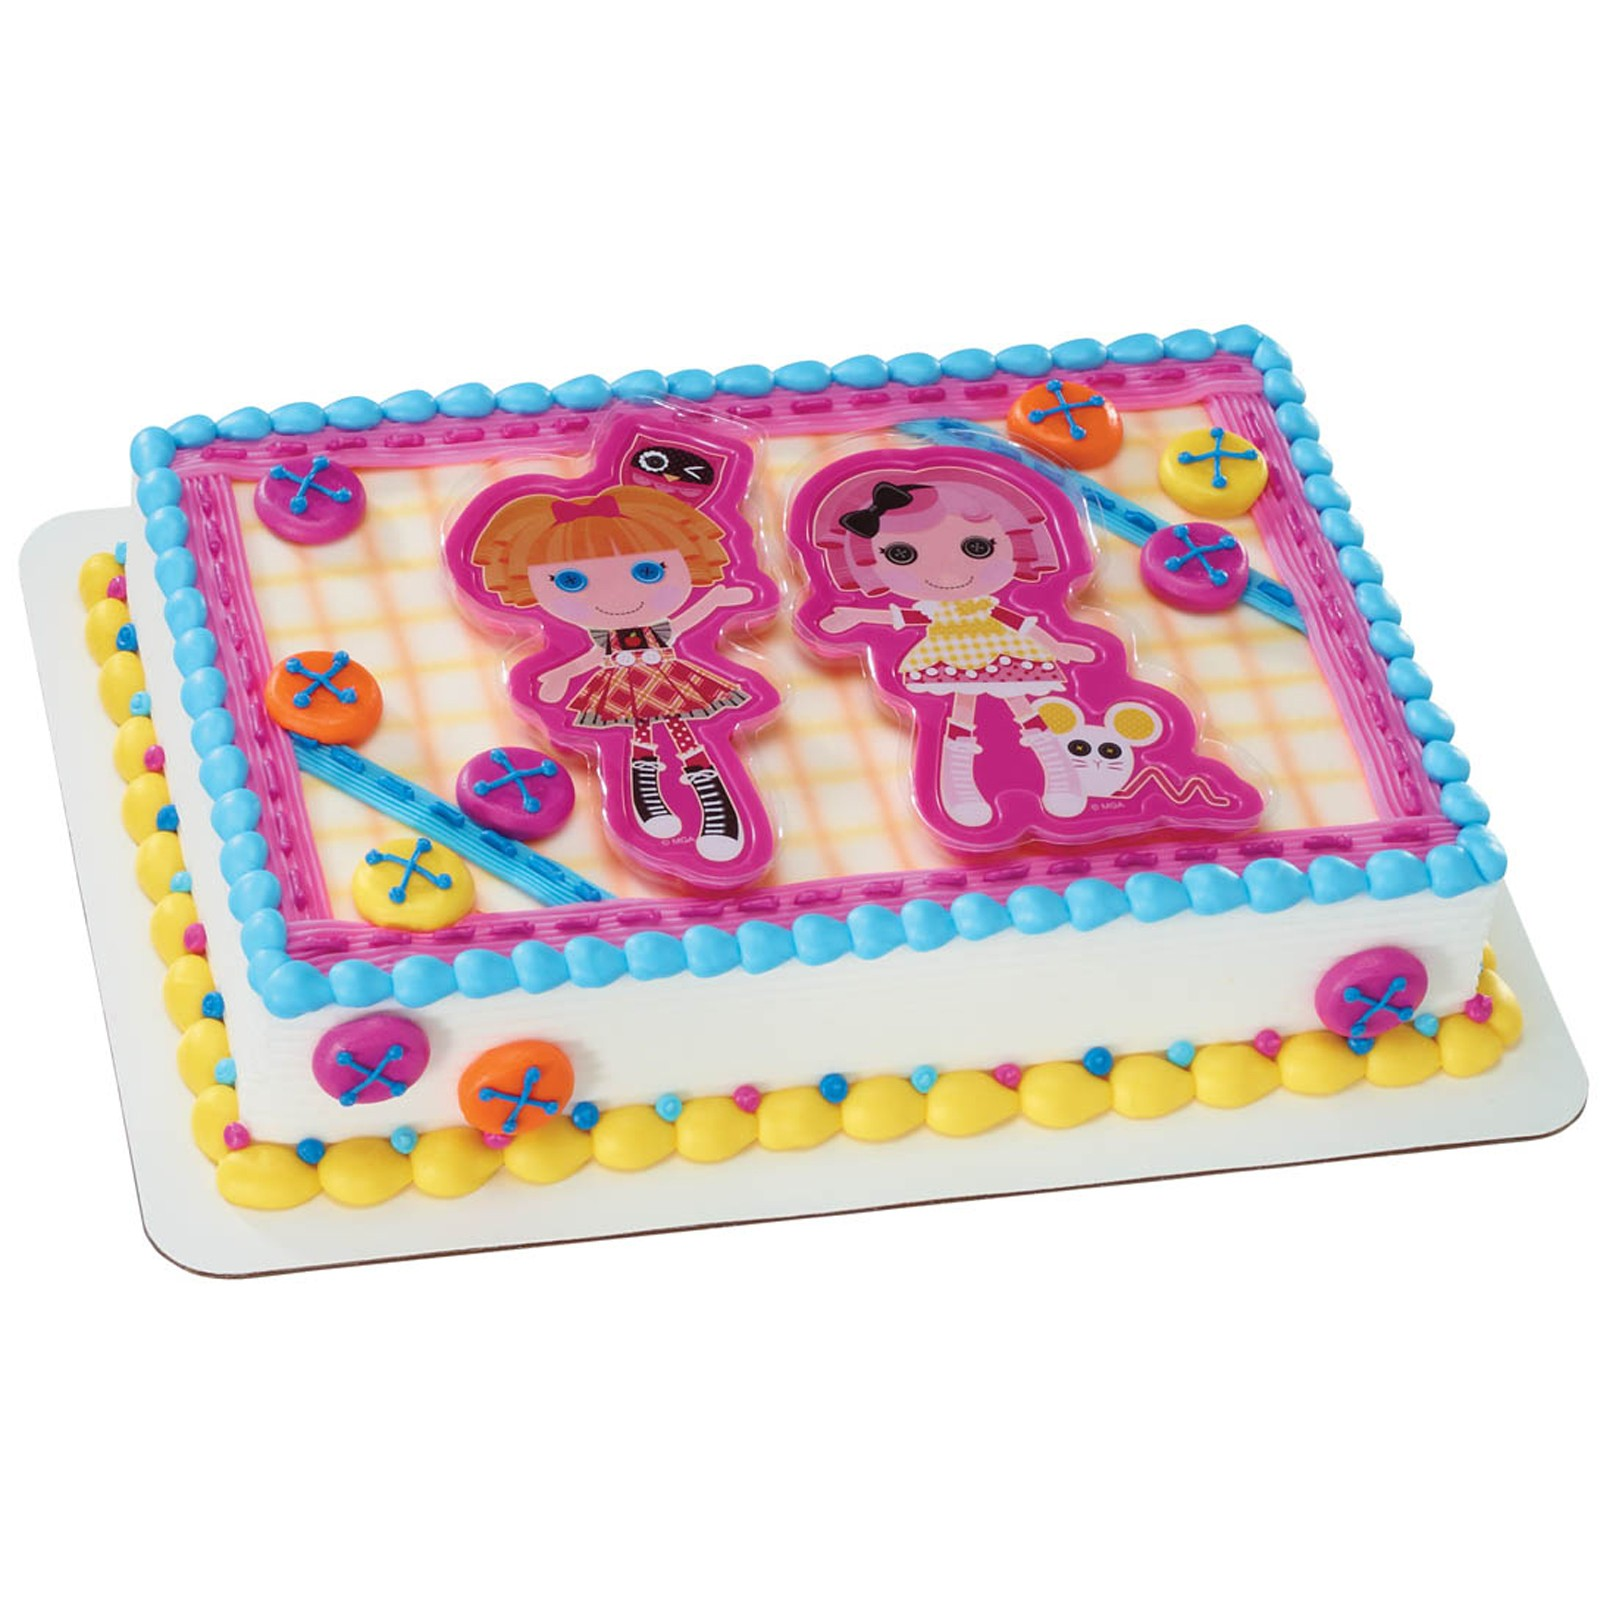 LALALOOPSY CAKE TOPPER Or COOKIE CUTTER